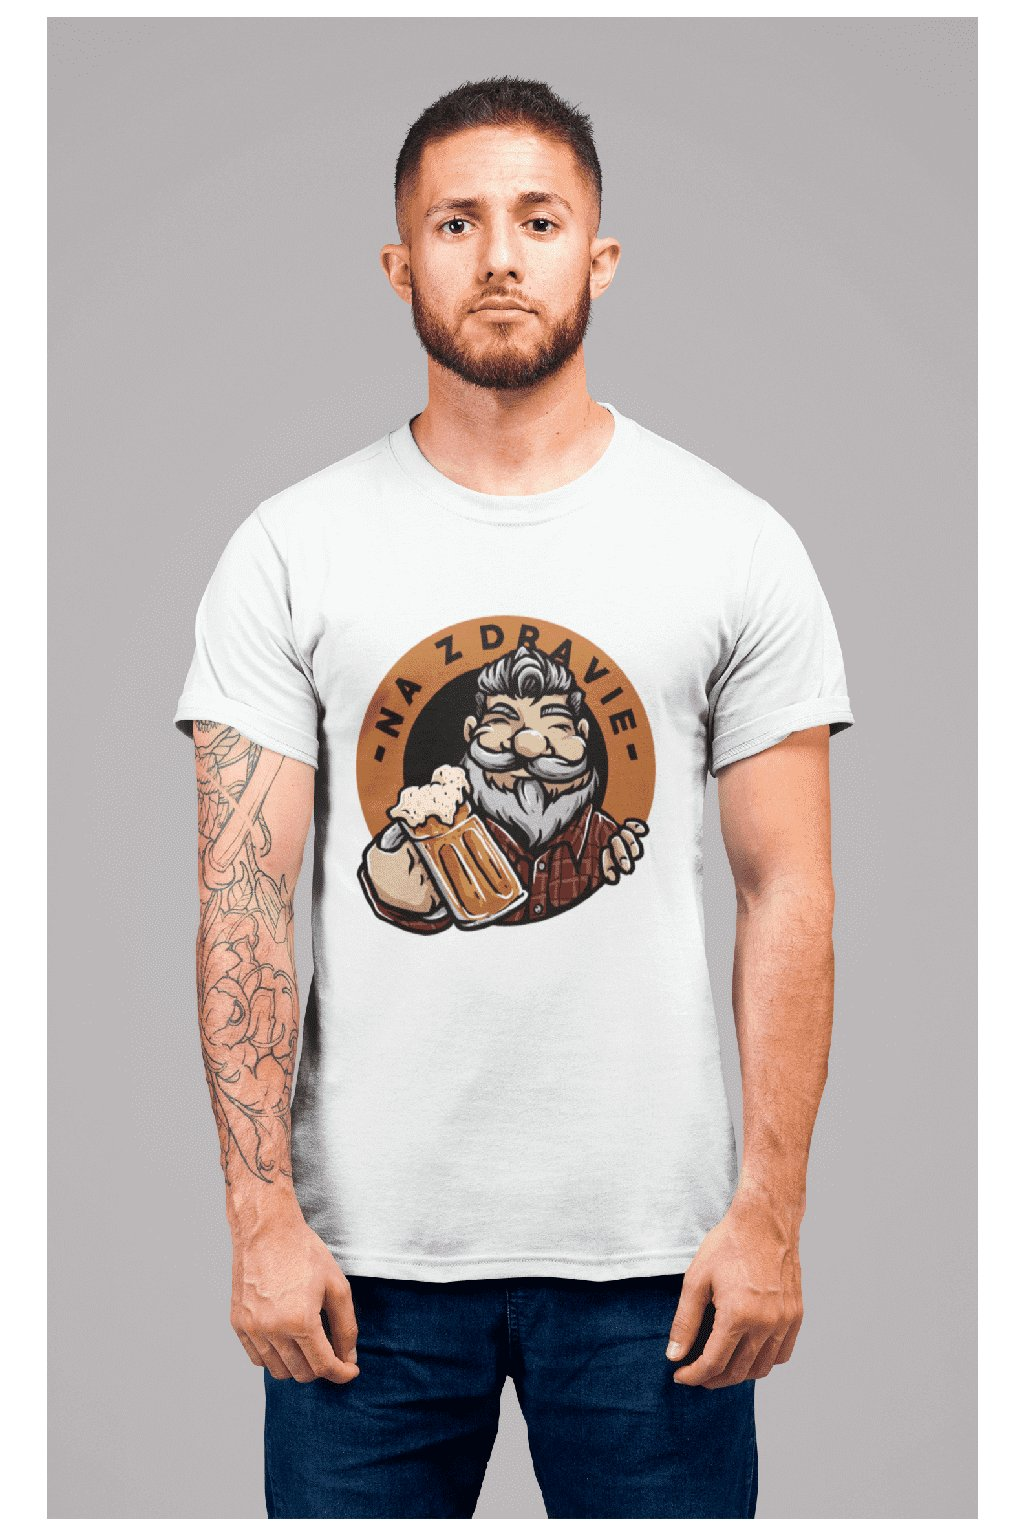 t shirt mockup of a redhead man with tattoos standing in a studio 22340 (6)